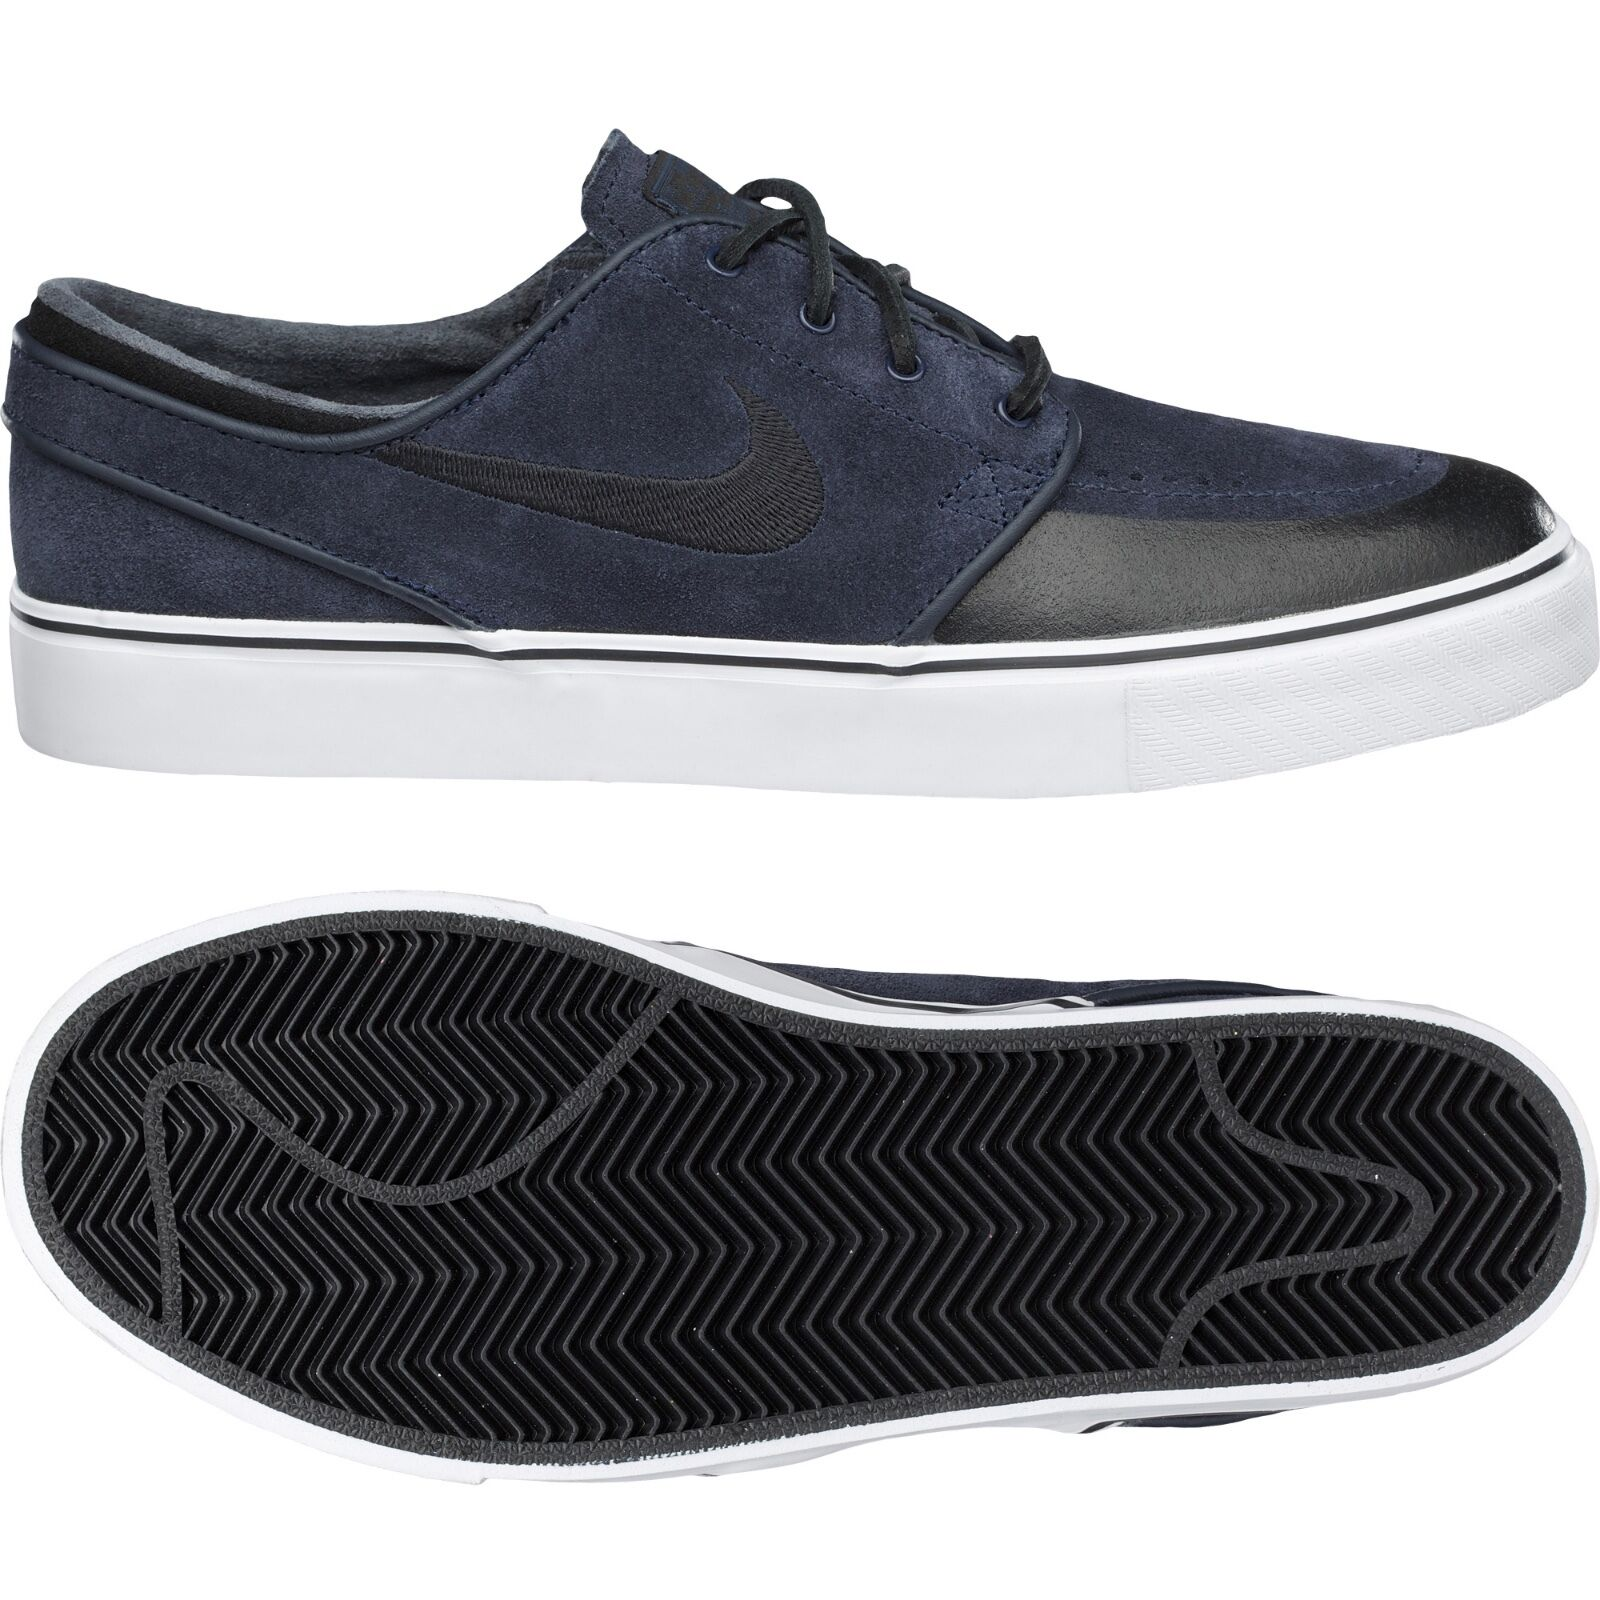 Nike Zoom Stefan Janoski Premium SE 631298-401 Dark Obsidian Black White shoes